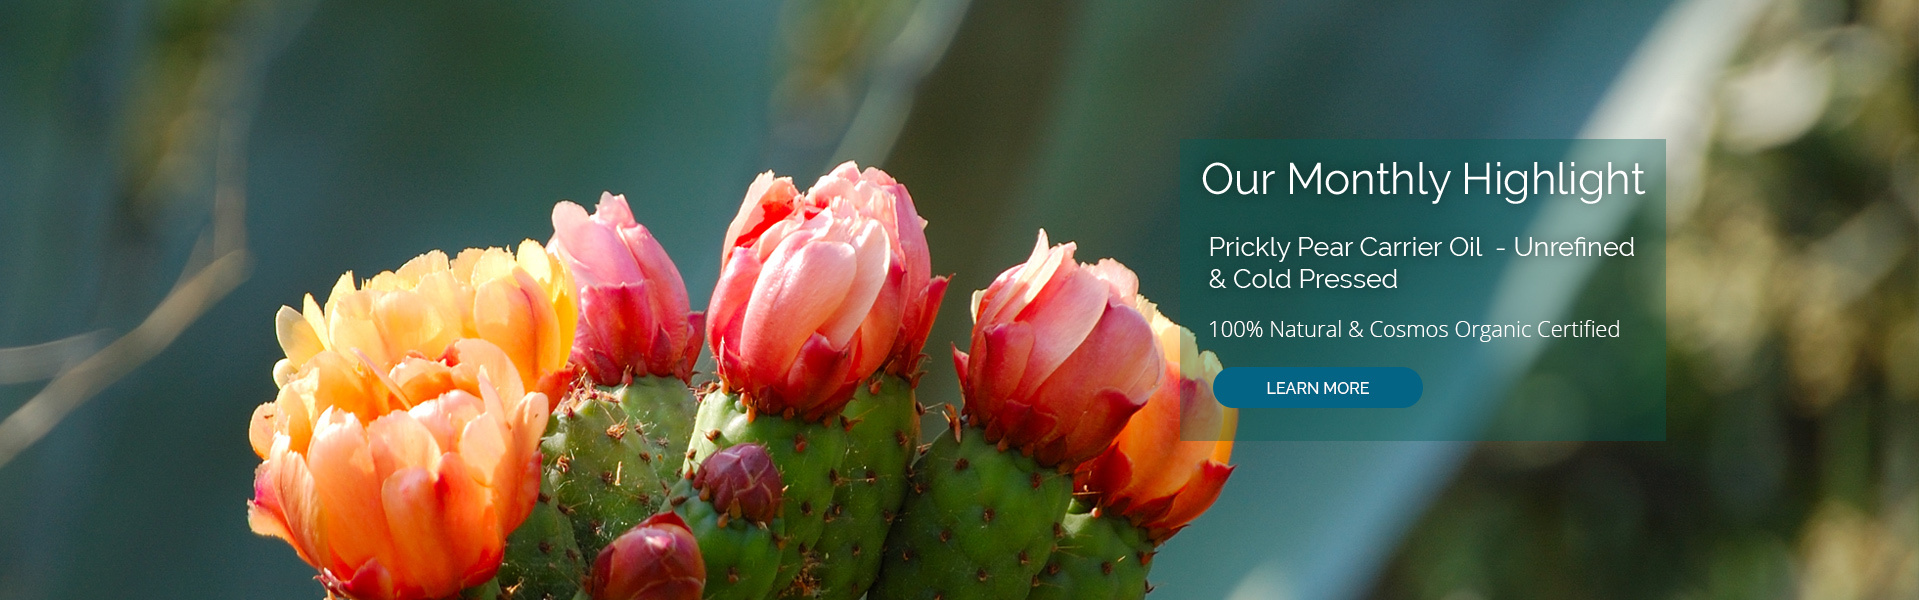 Prickly Pear Carrier Oil. Certified Organic and 100% Natural